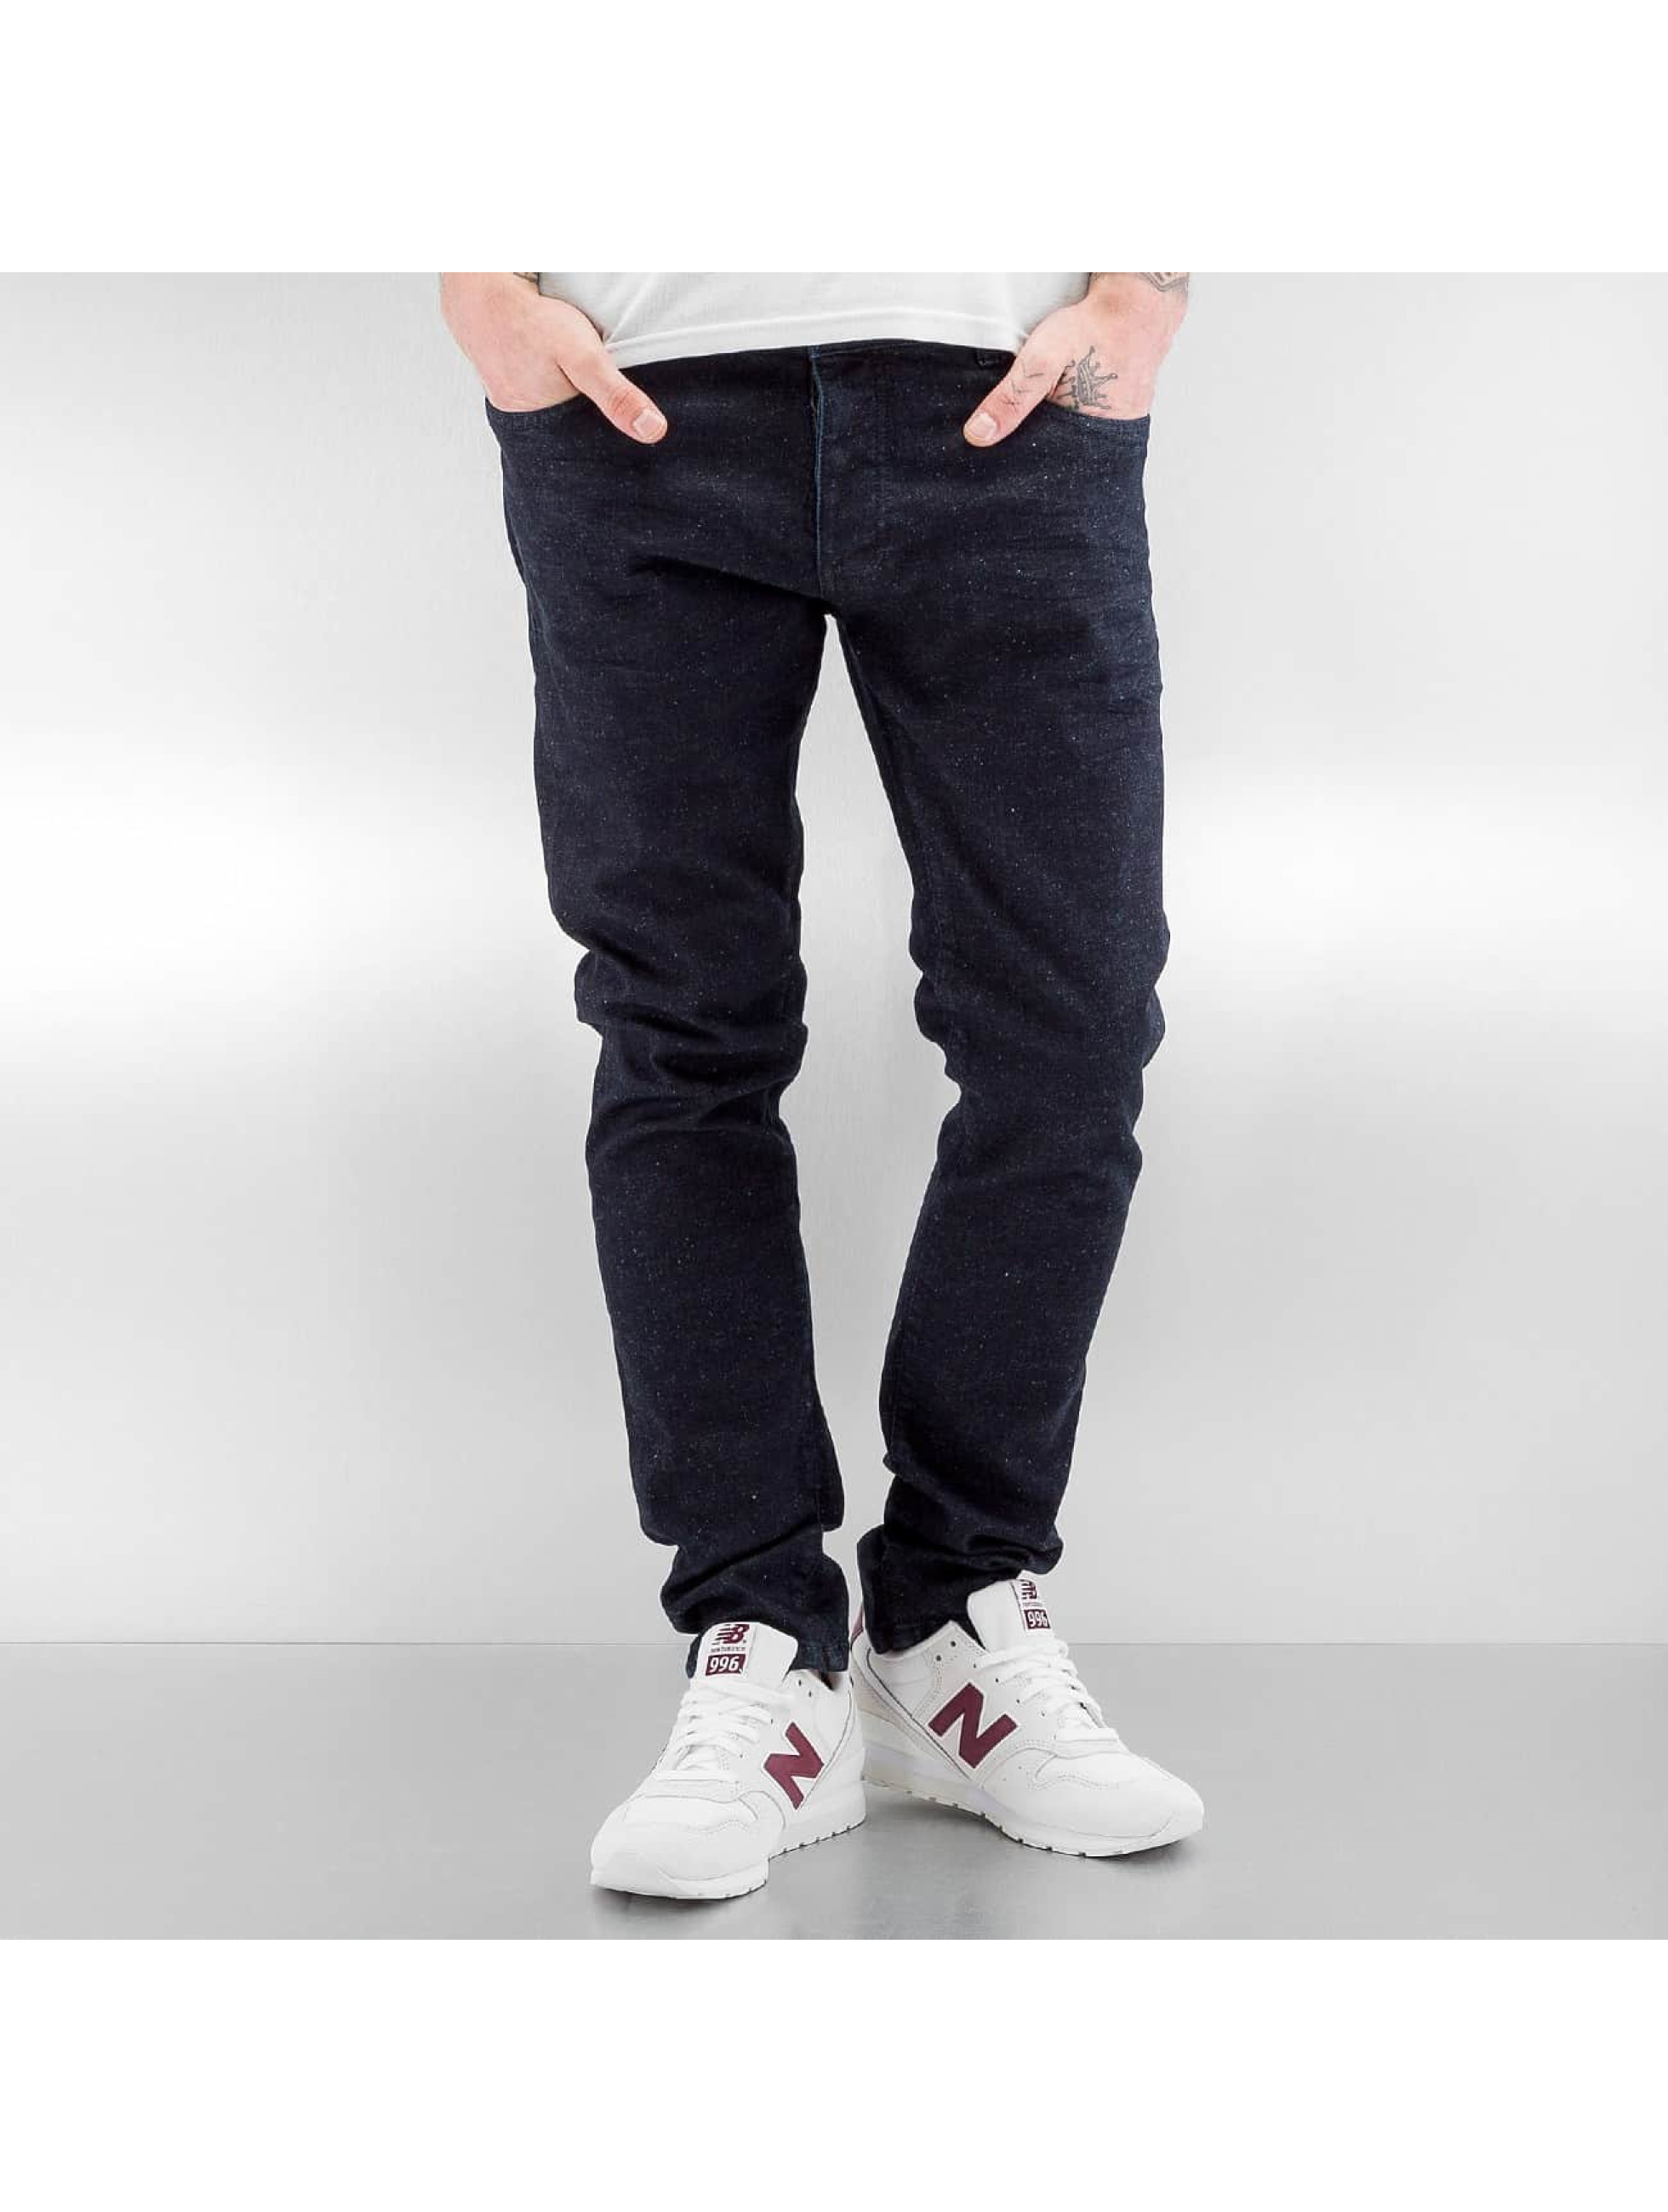 Cyprime / Slim Fit Jeans K100 in indigo W 34